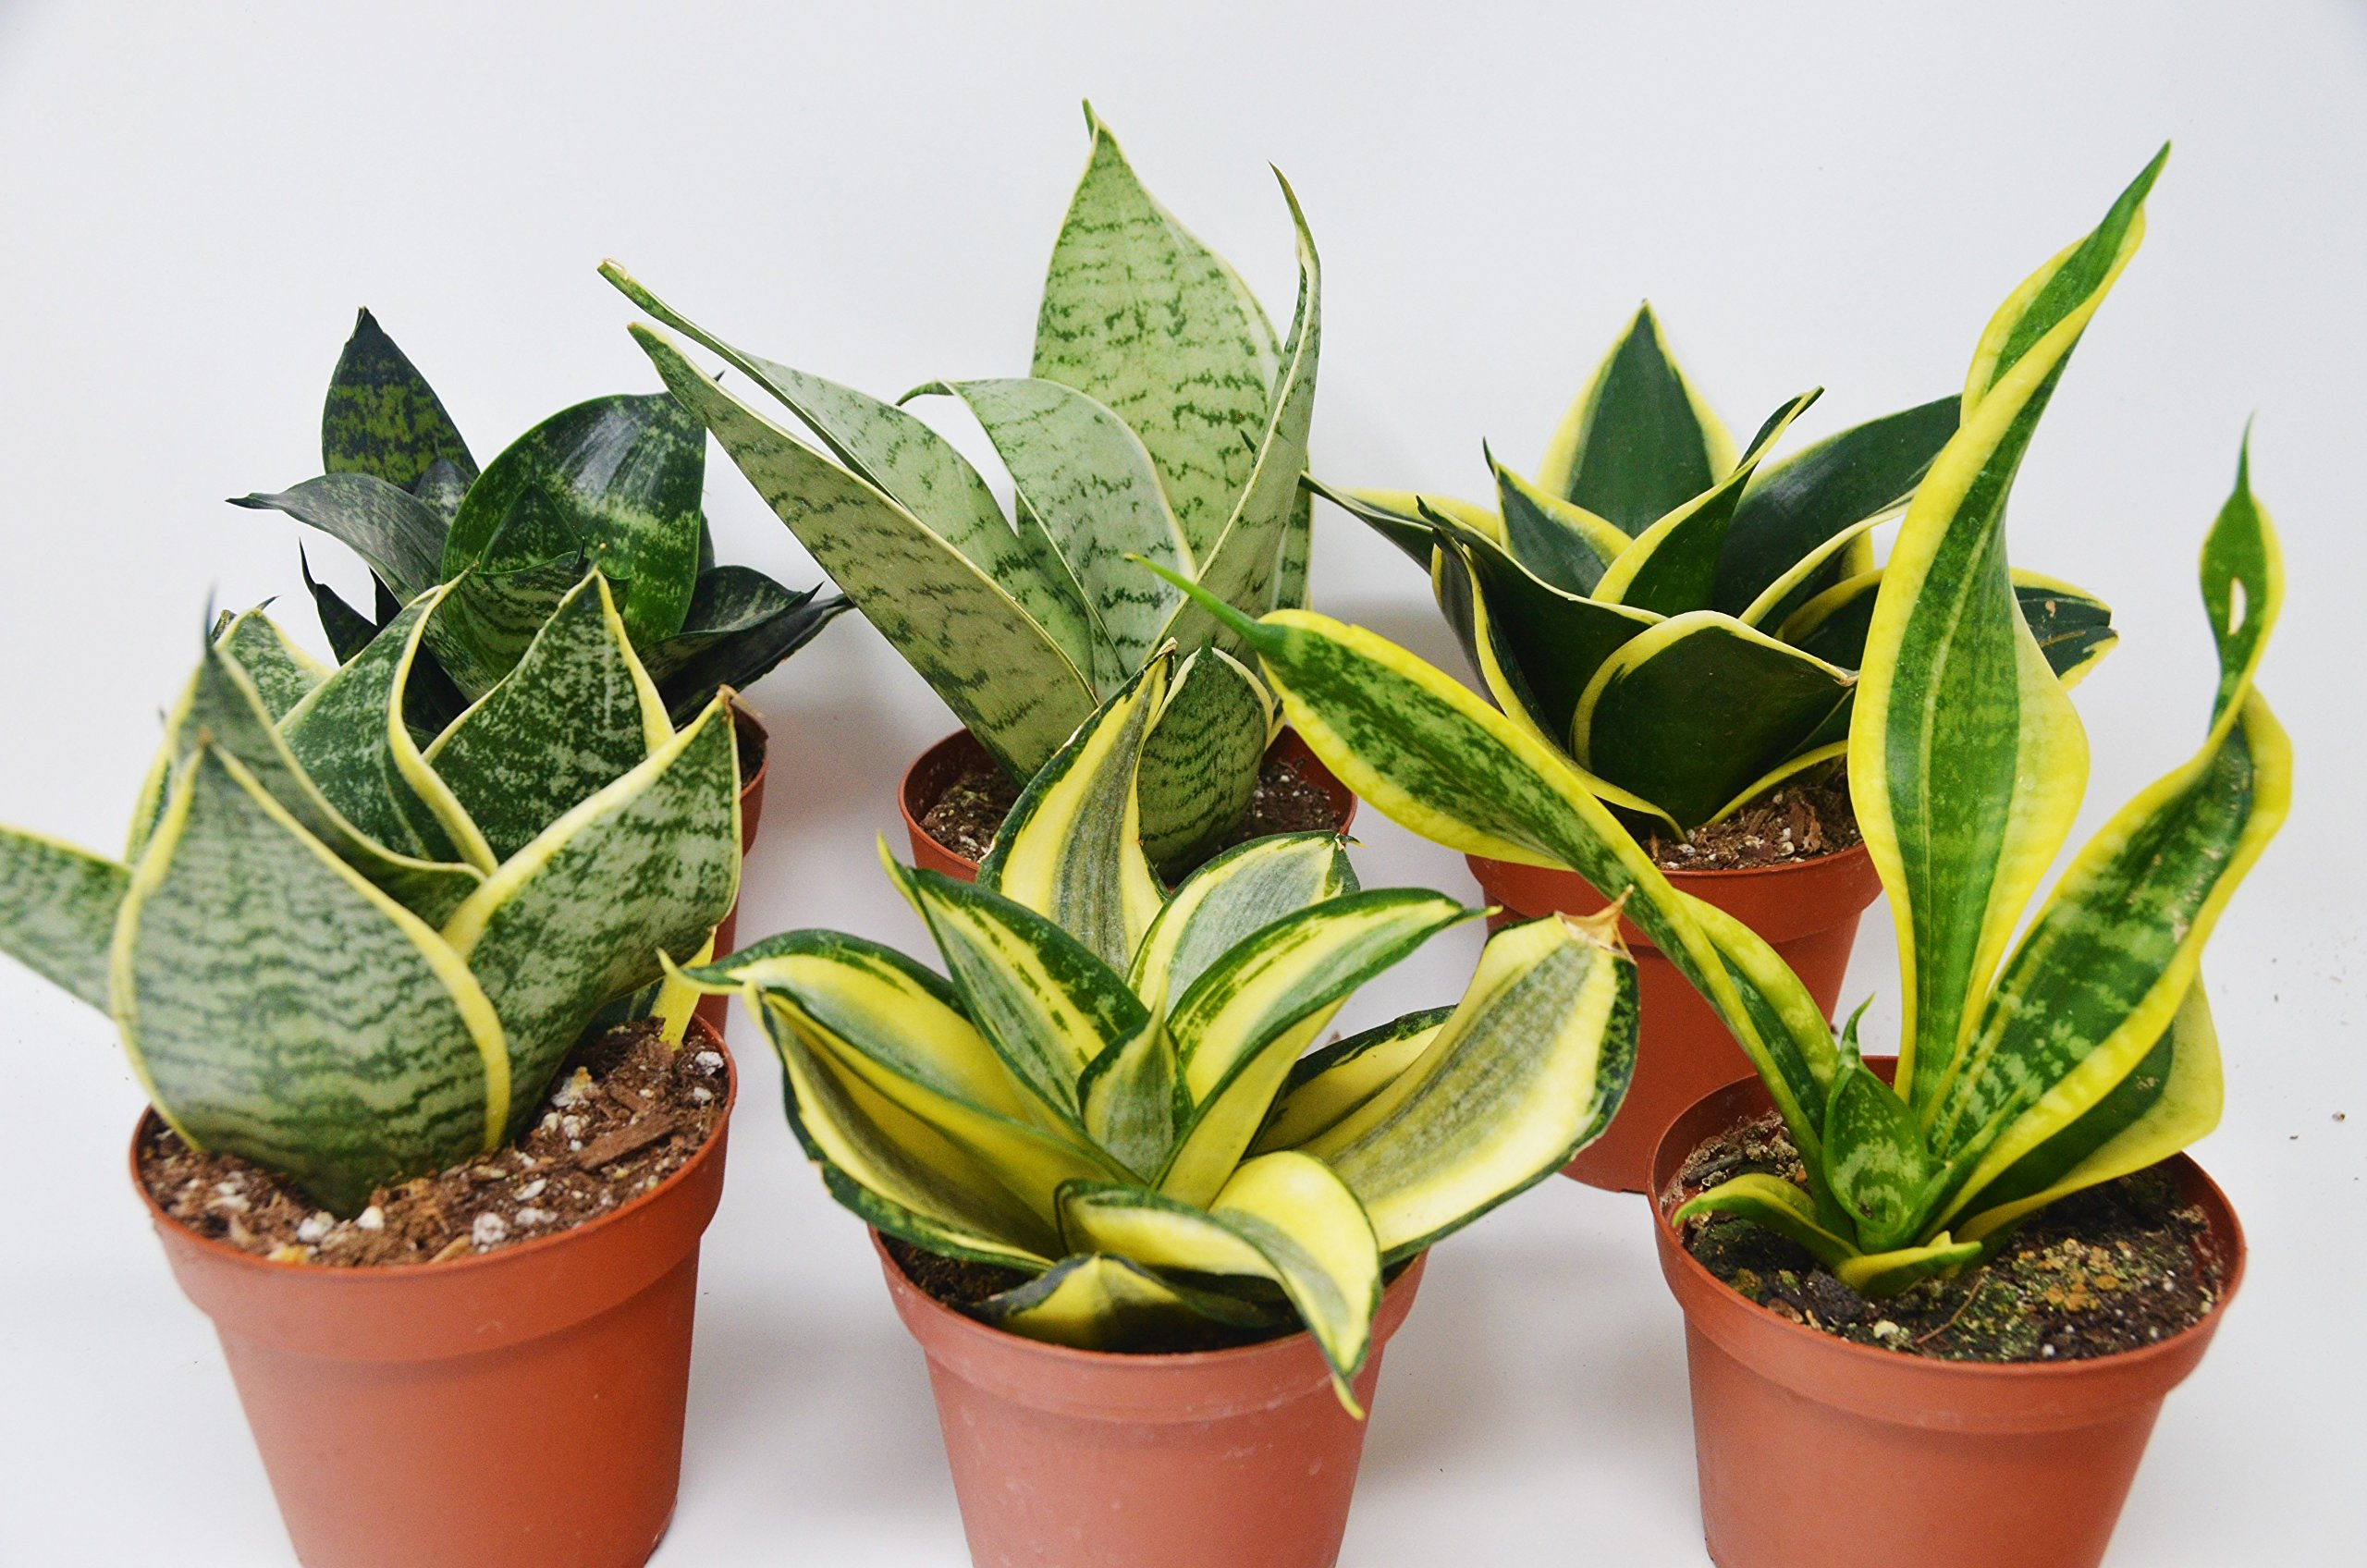 6 Different Snake Plants in 4'' Pots - Sansevieria - Live Plant - FREE Care Guide